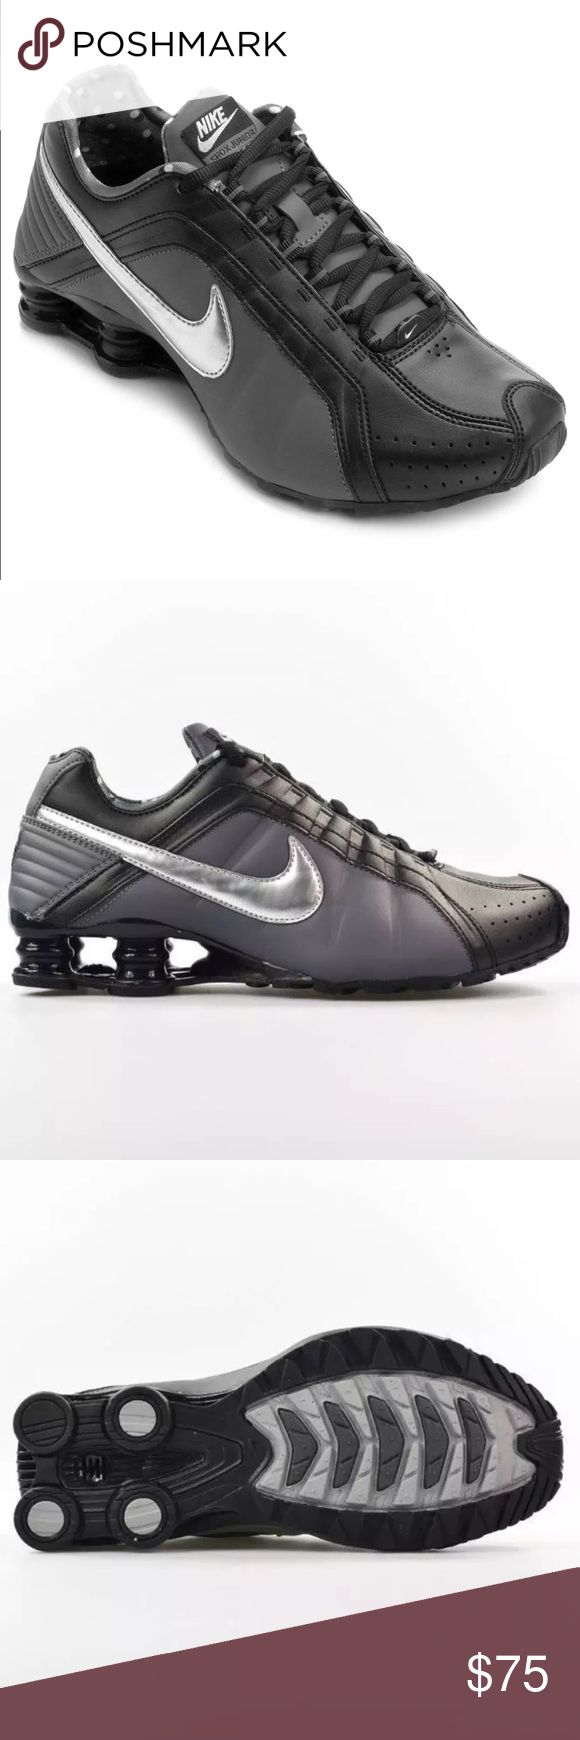 Nike Womens Shox Junior Run Running Shoes New Nike Womens Shox Junior Run Running Shoes 454339-020 sz 7.5 Black Dark Gray. 100% AUTHENTIC NEW IN ORIGINAL BOX WITH NO BOX LID  NIKE SHOX JUNIOR  WOMEN'S SHOES 454339 020  COLOR: BLACK/METALLIC-SILVER  FULL LENGTH PHYLON MIDSOLE  NON-MARKING RUBBER OUTSOLE Nike Shoes Athletic Shoes